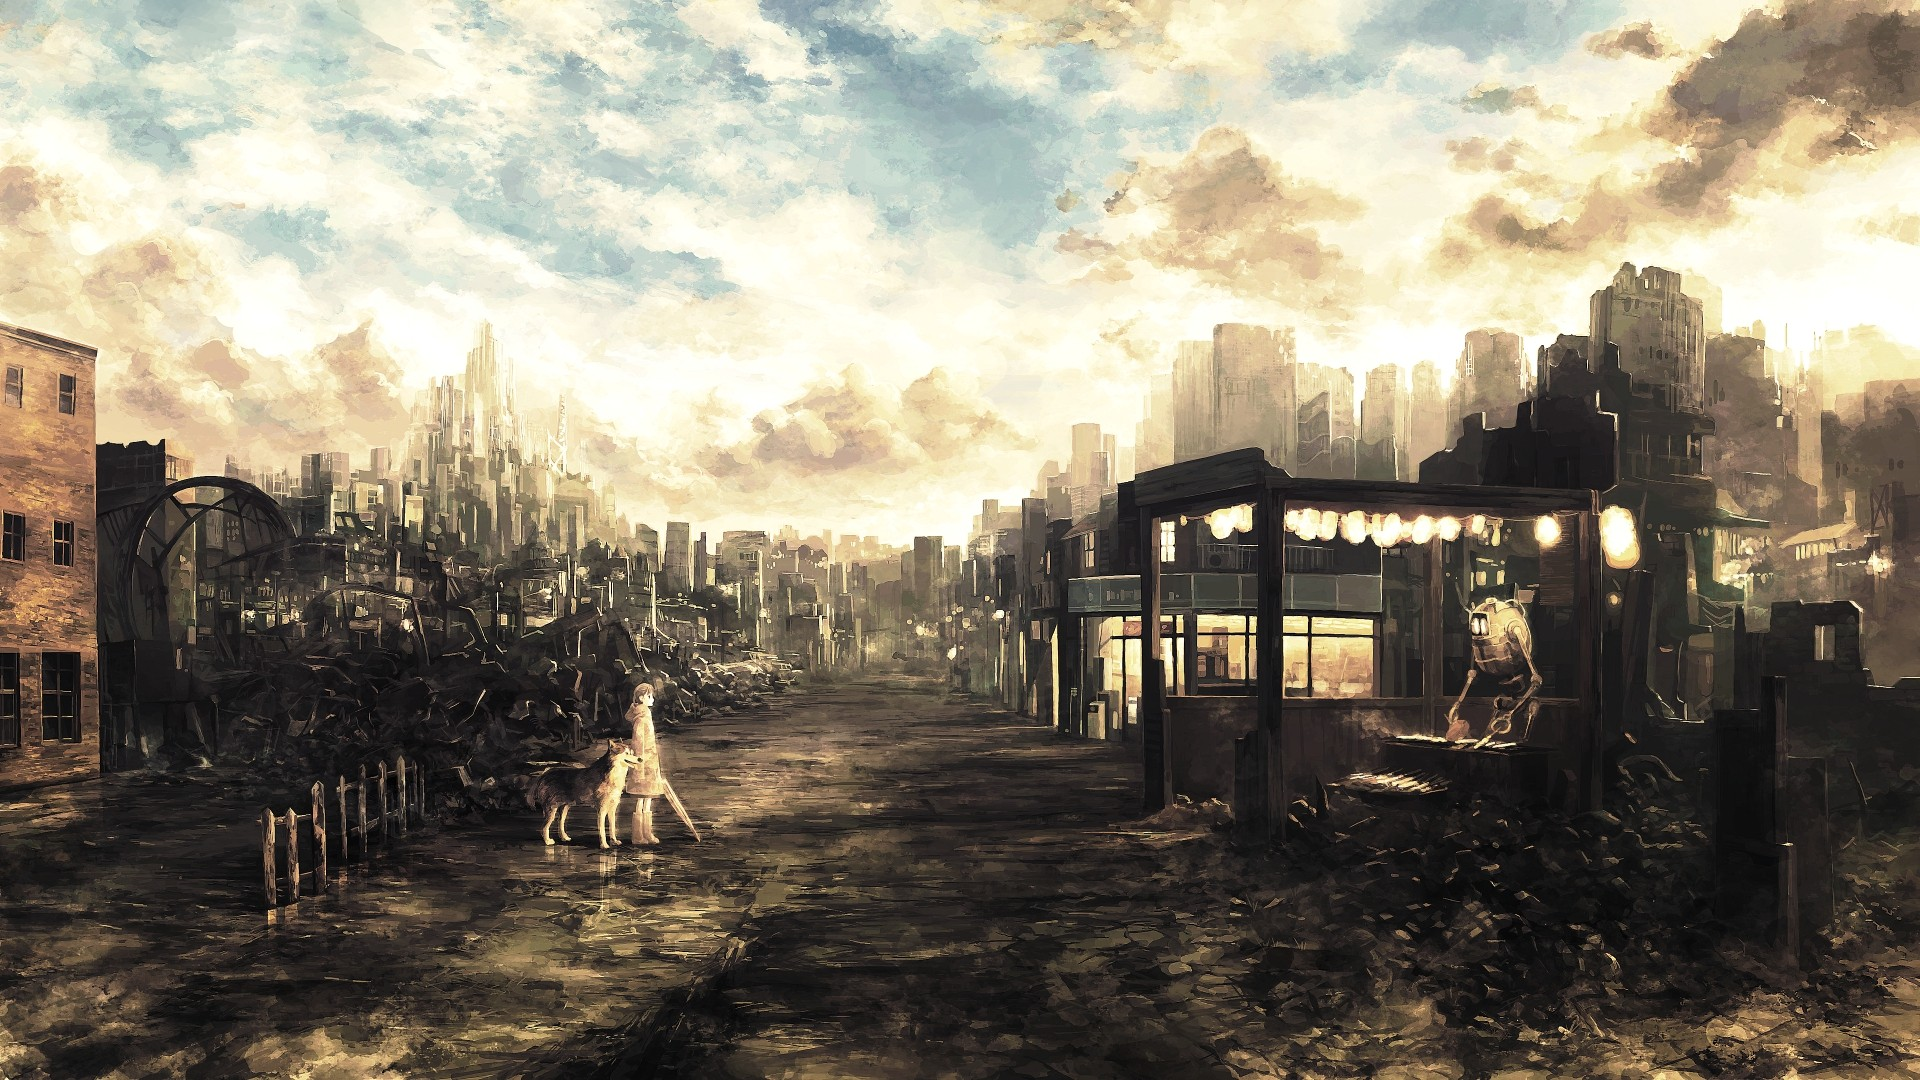 post apocalyptic wallpapers november 2013 1920x1080